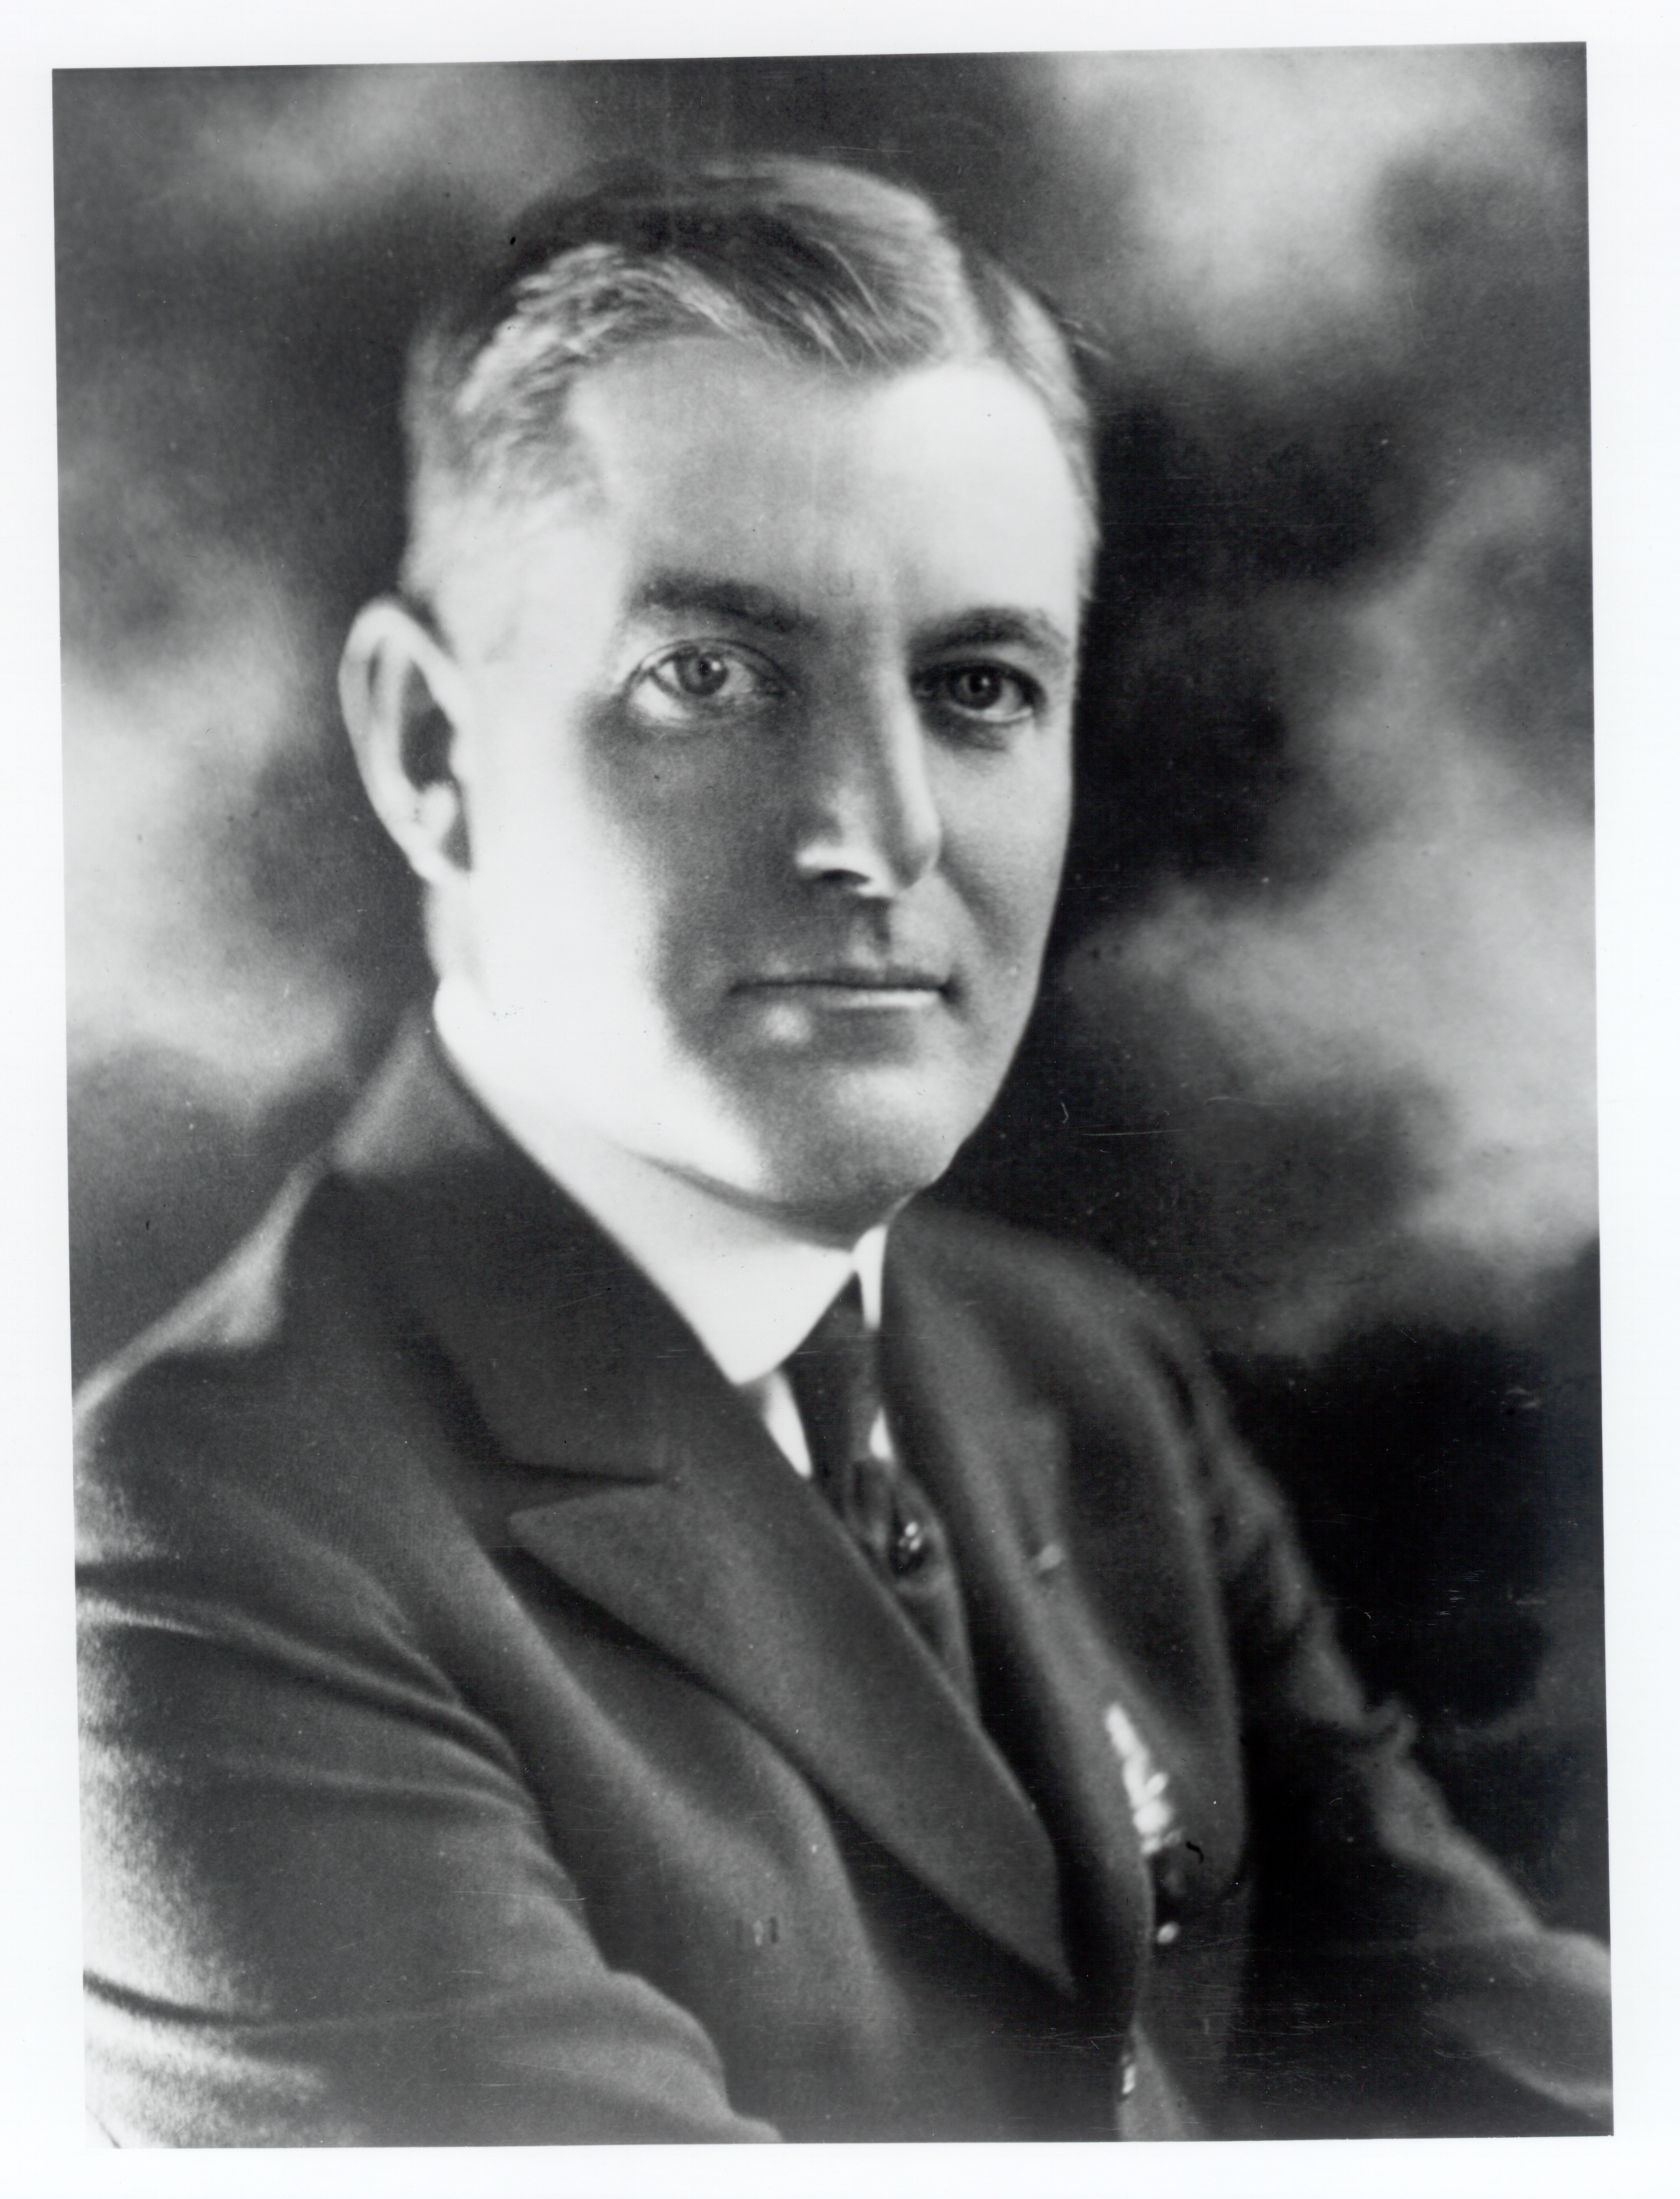 James A. Allison made his fortune in the early automobile industry and lived at Riverdale from 1913 until his death in 1928.